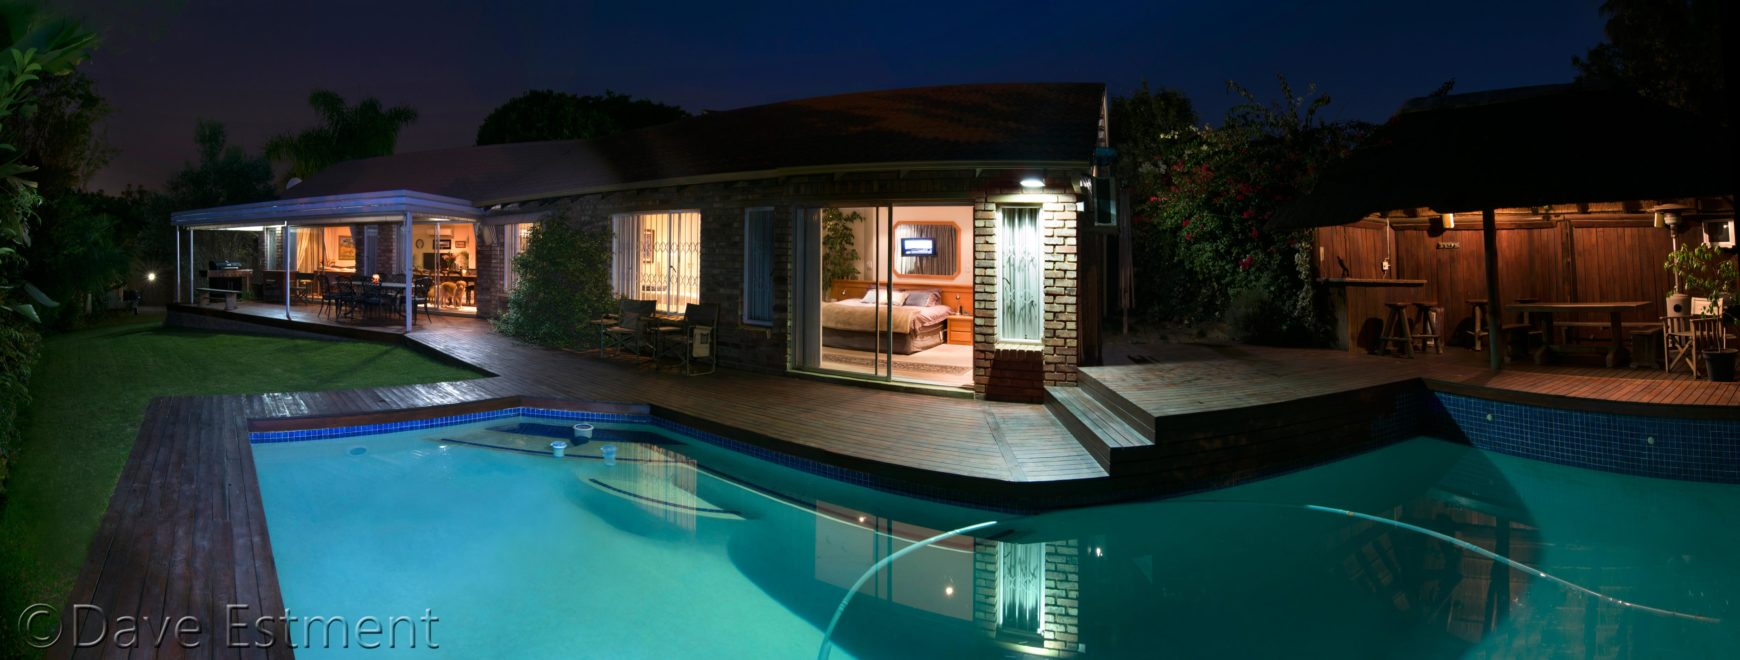 Home by Night photographed by Dave Estment